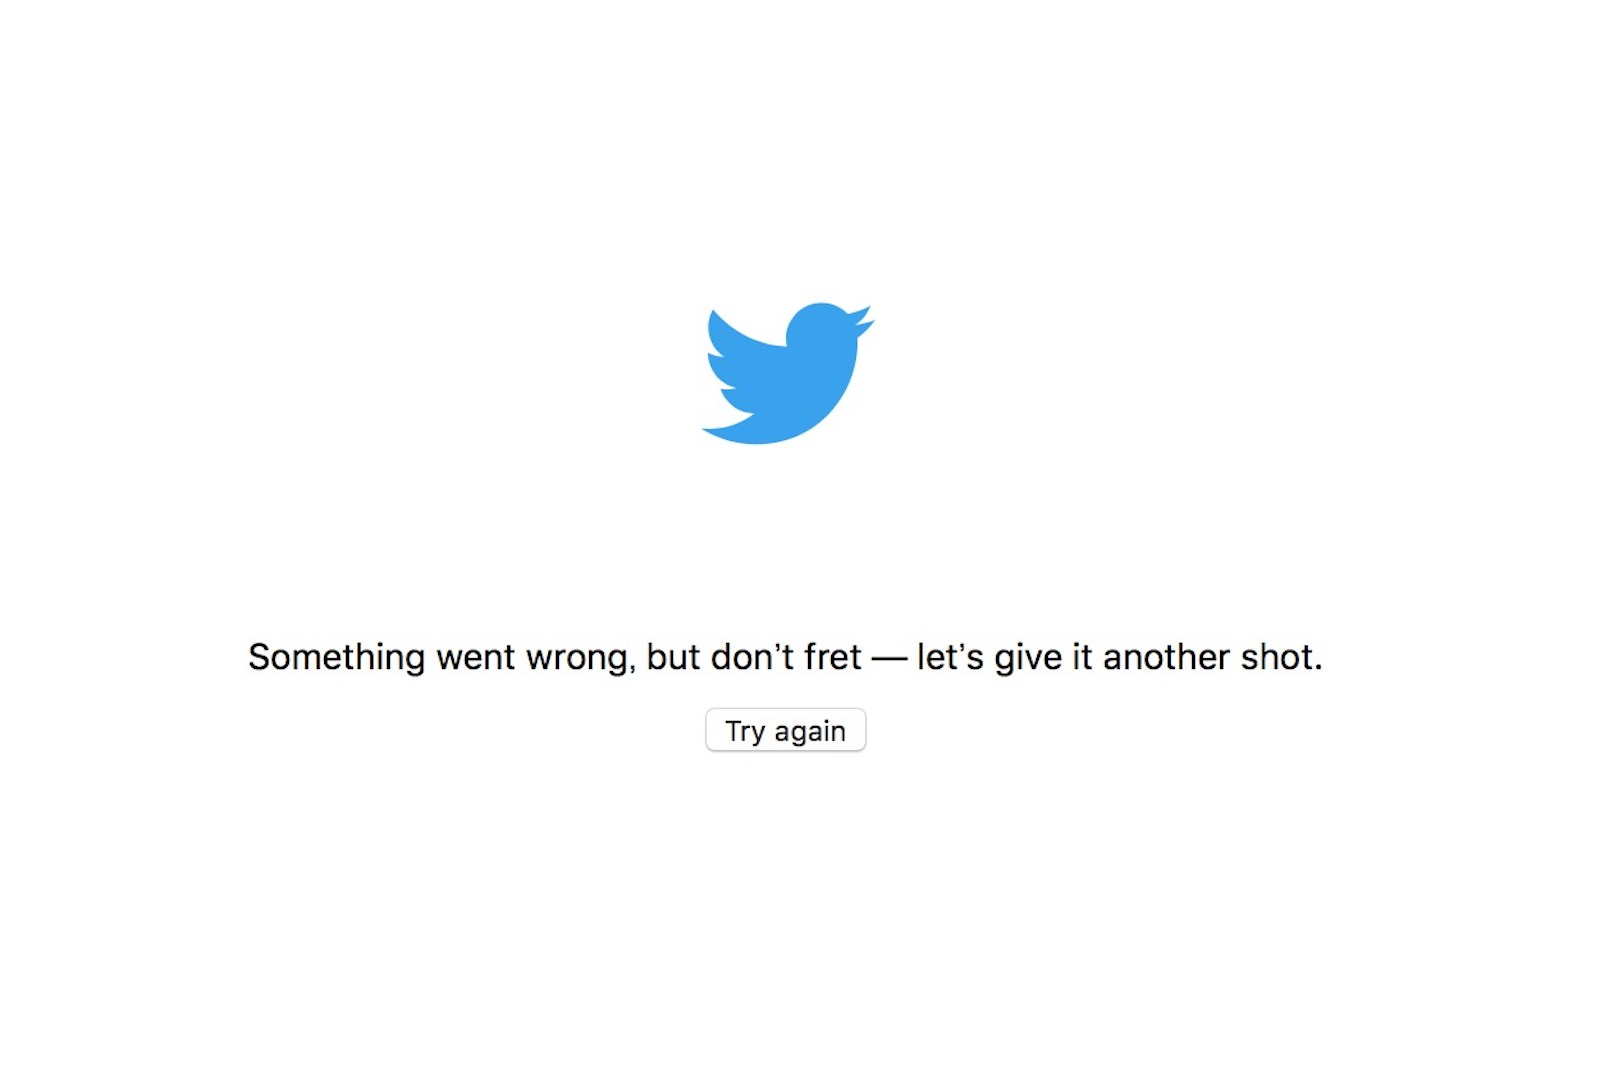 Twitter is still down